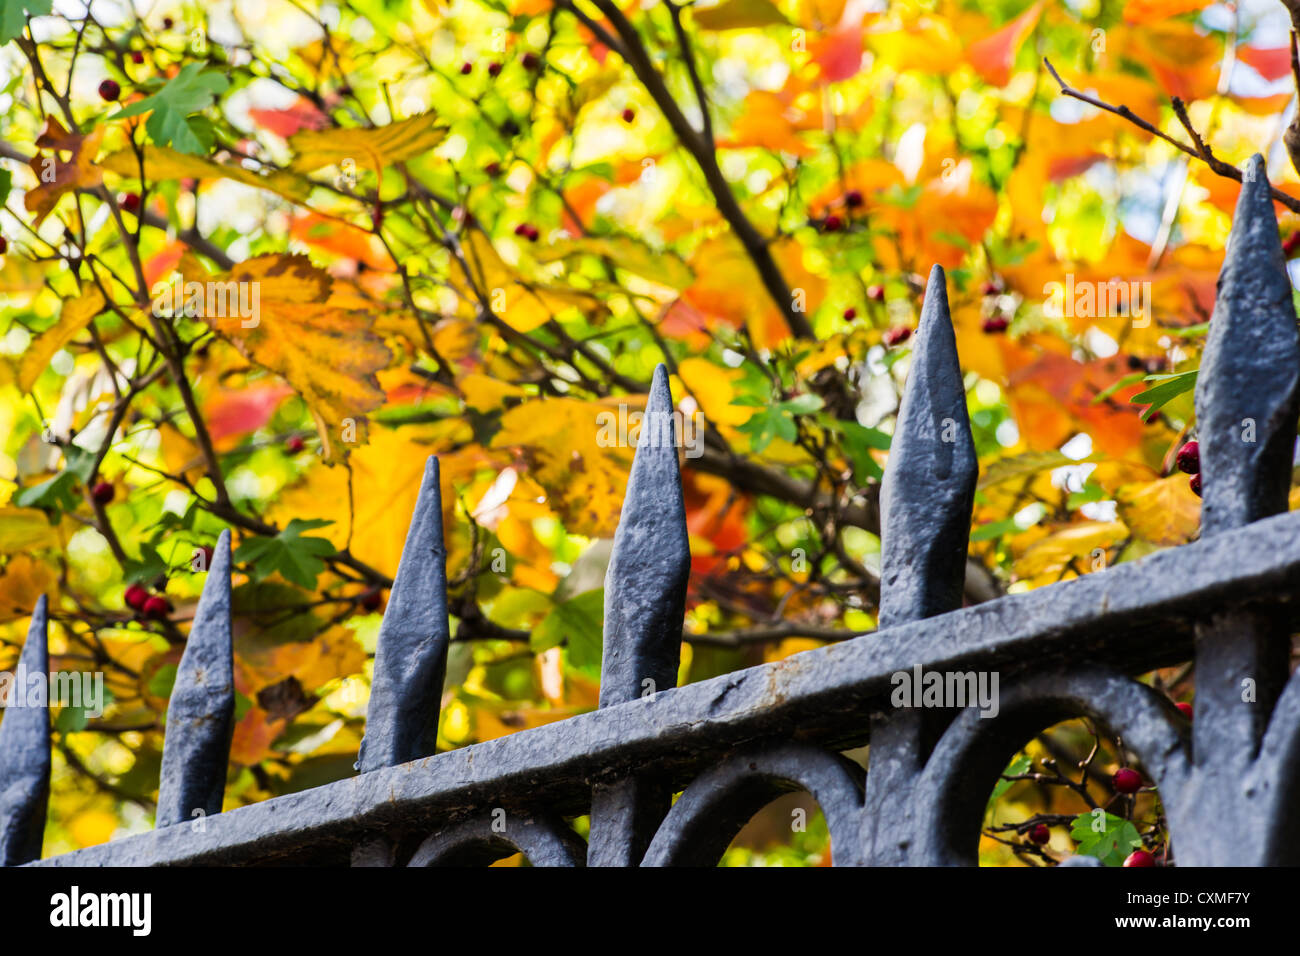 Live Fence Stockfotos & Live Fence Bilder - Alamy